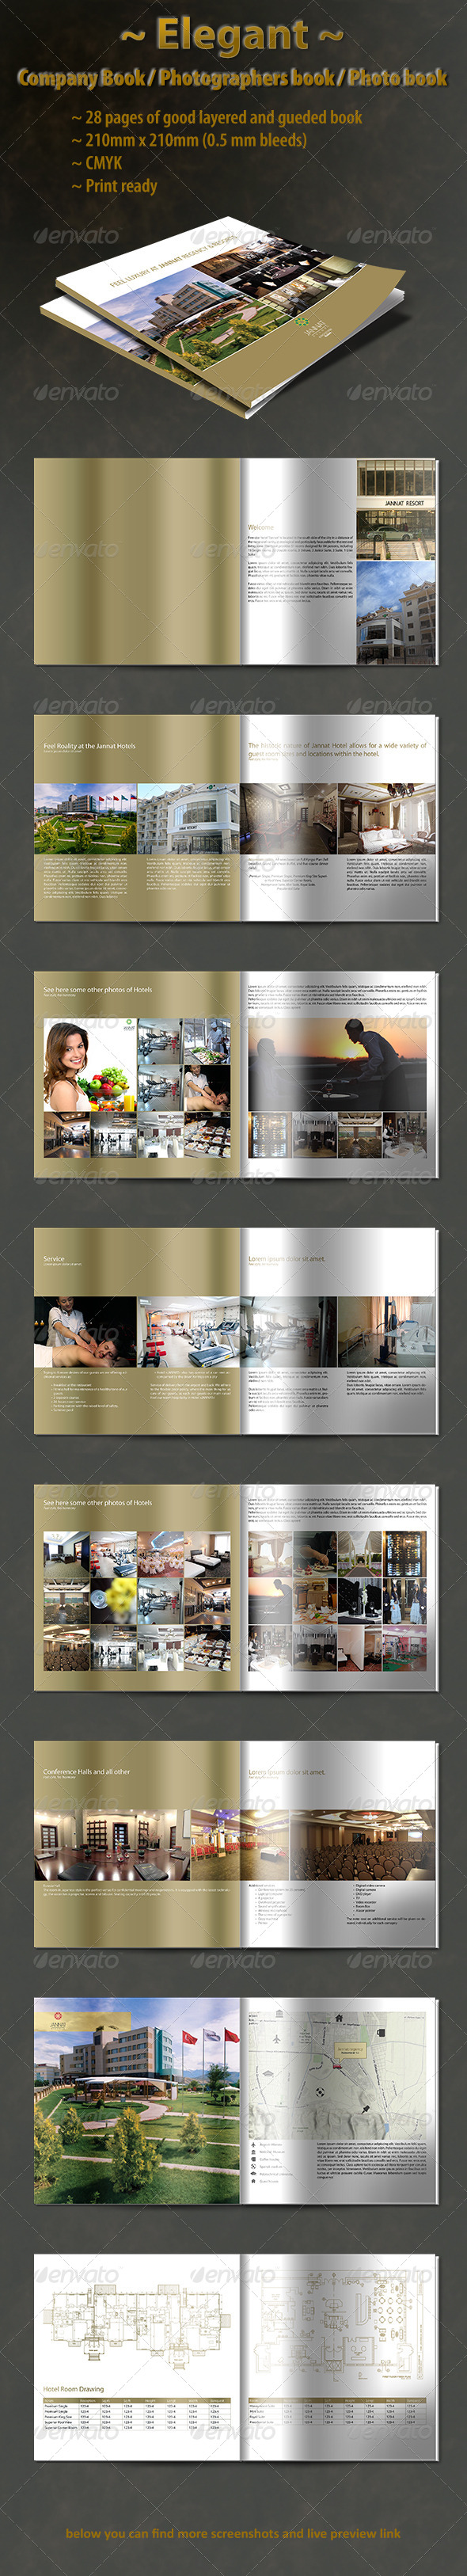 GraphicRiver Elegant Company Book Template 4713790